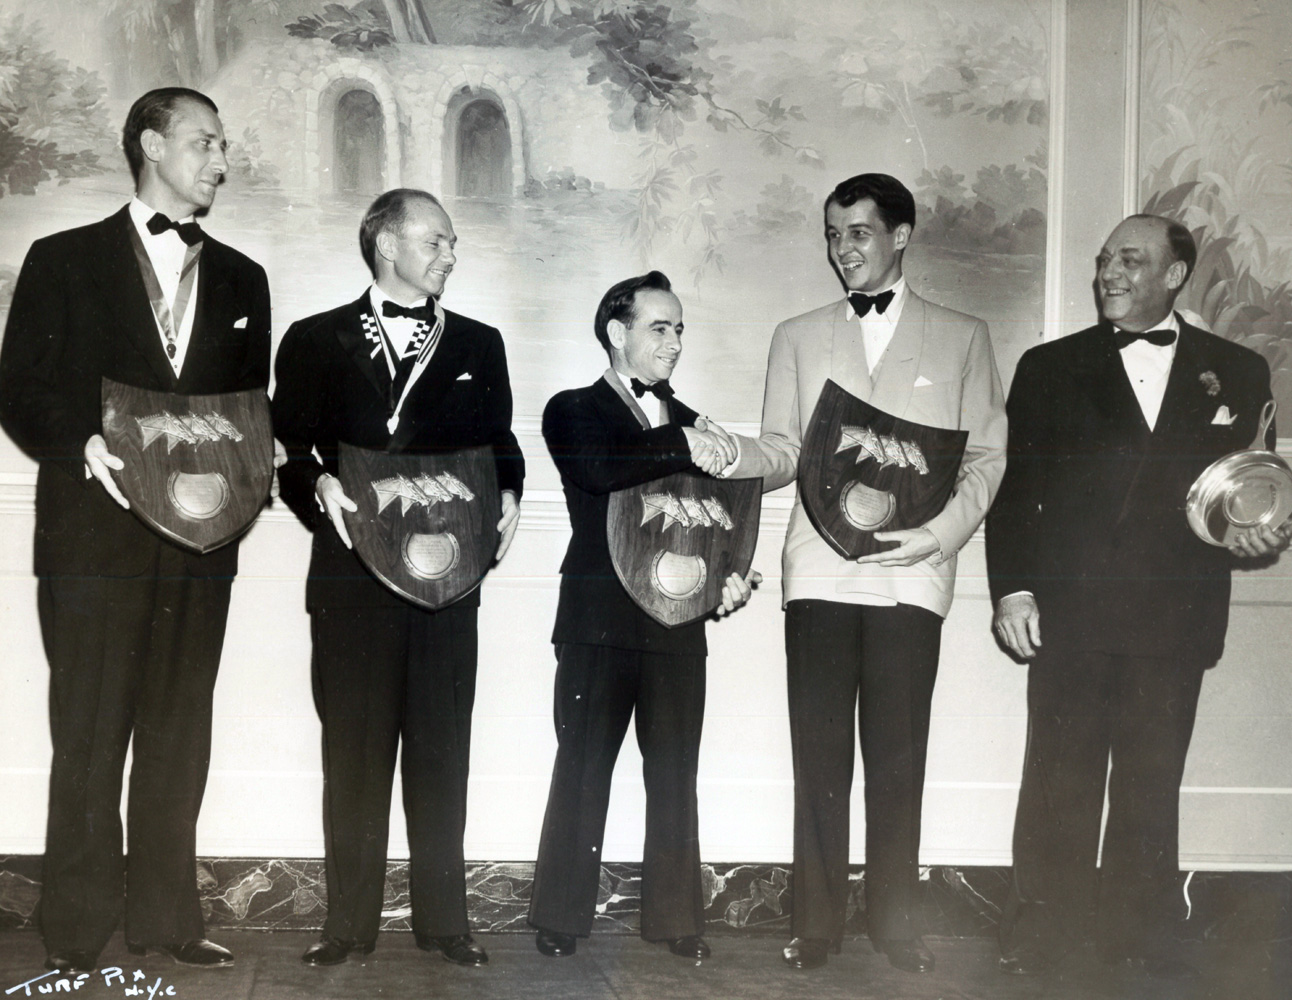 Alex Robb, Earl Sande, John Longden, Alfred G. Vanderbilt II, and G. Lamaze receive awards at the 9th annual Turf Writers Dinner at Saratoga in 1939 (TurfPix/Museum Collection)